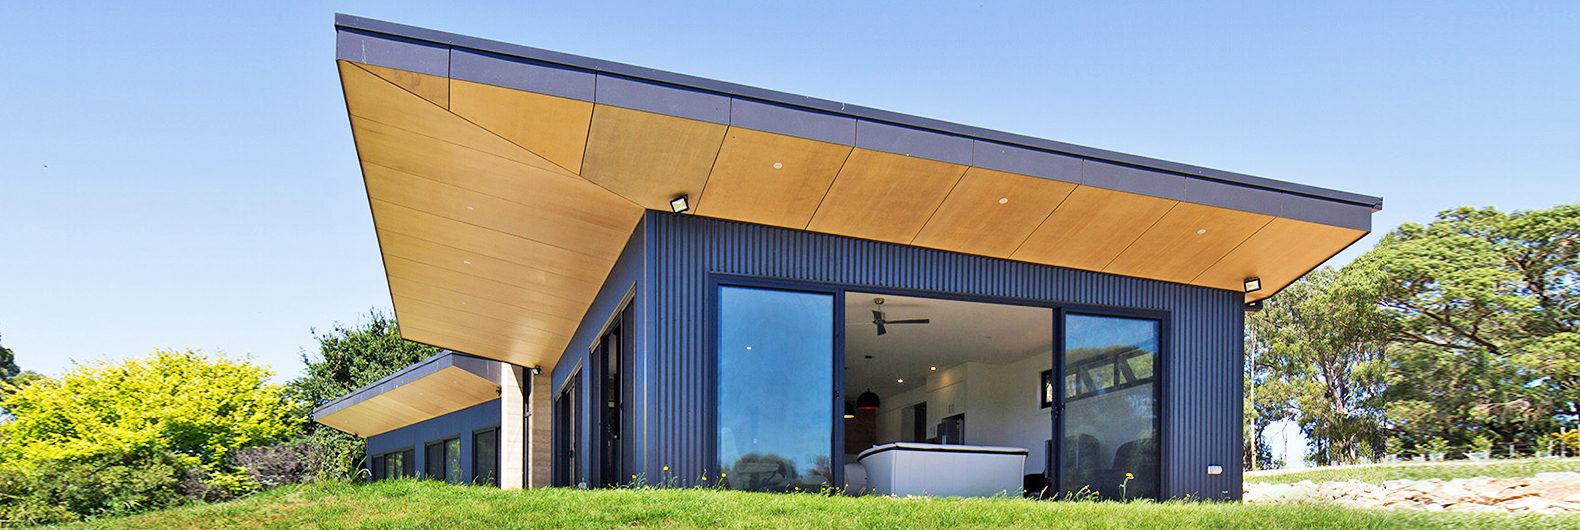 Elegant Rammed Earth Walls Form The Core Of This Modern Australian Home